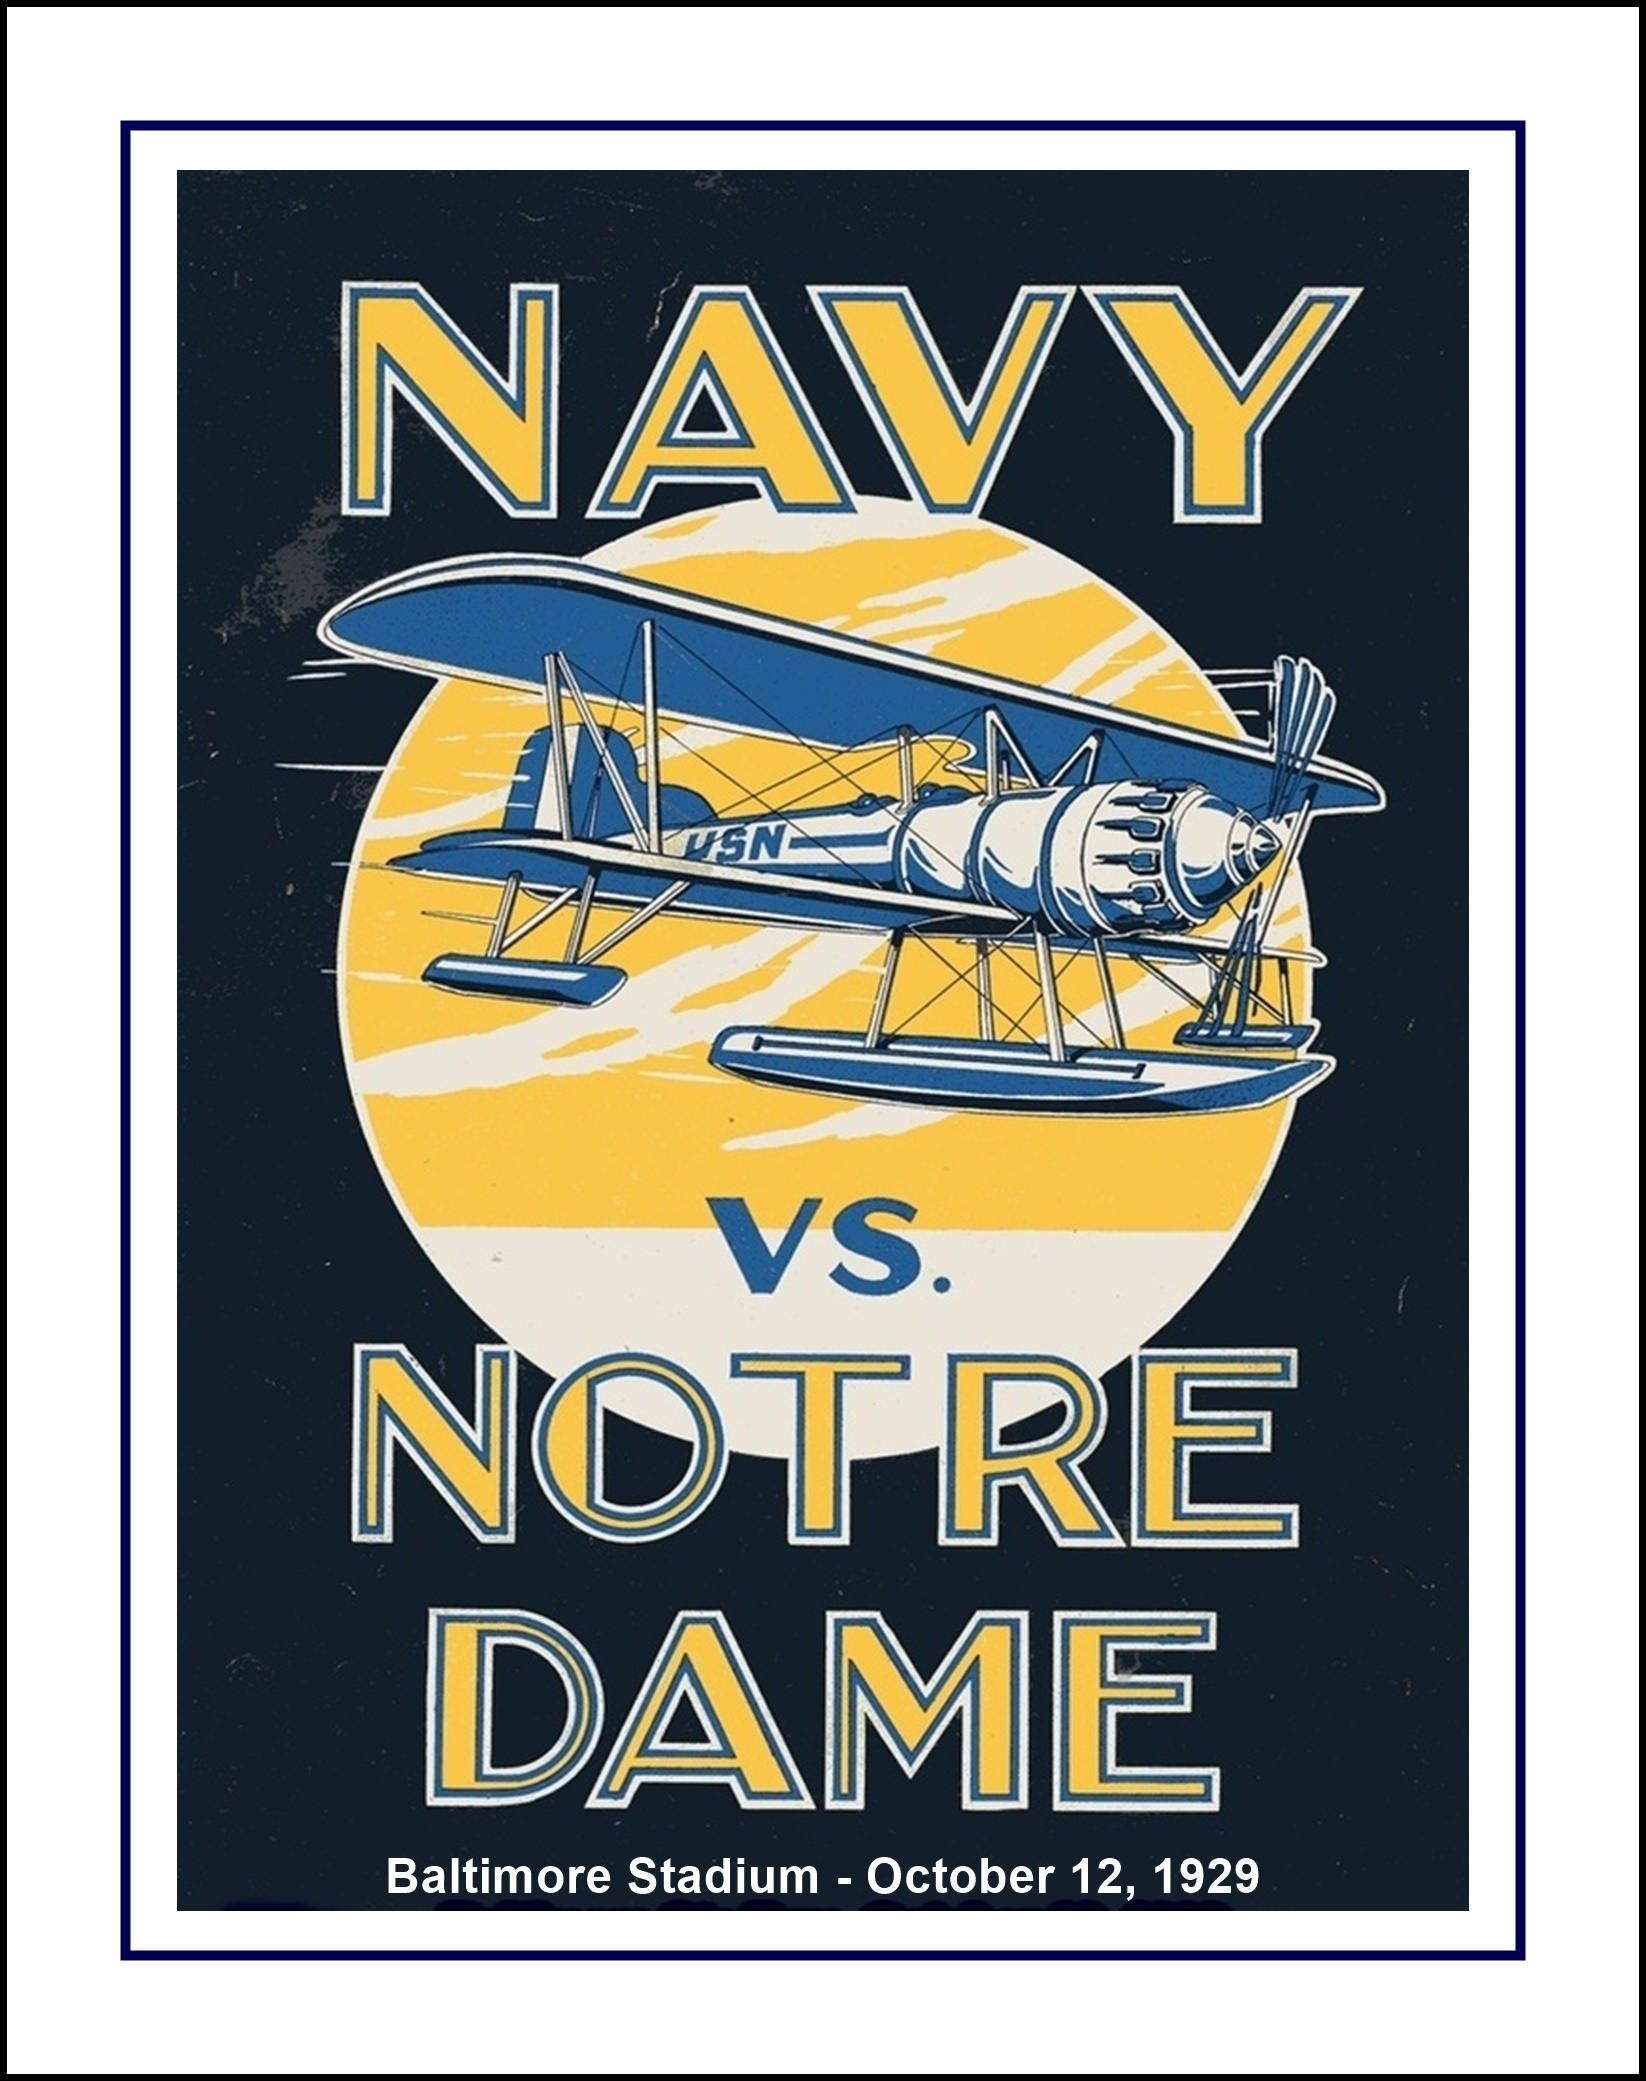 Vintage 1920s Notre Dame, Navy, Football Poster, Retro Military ...